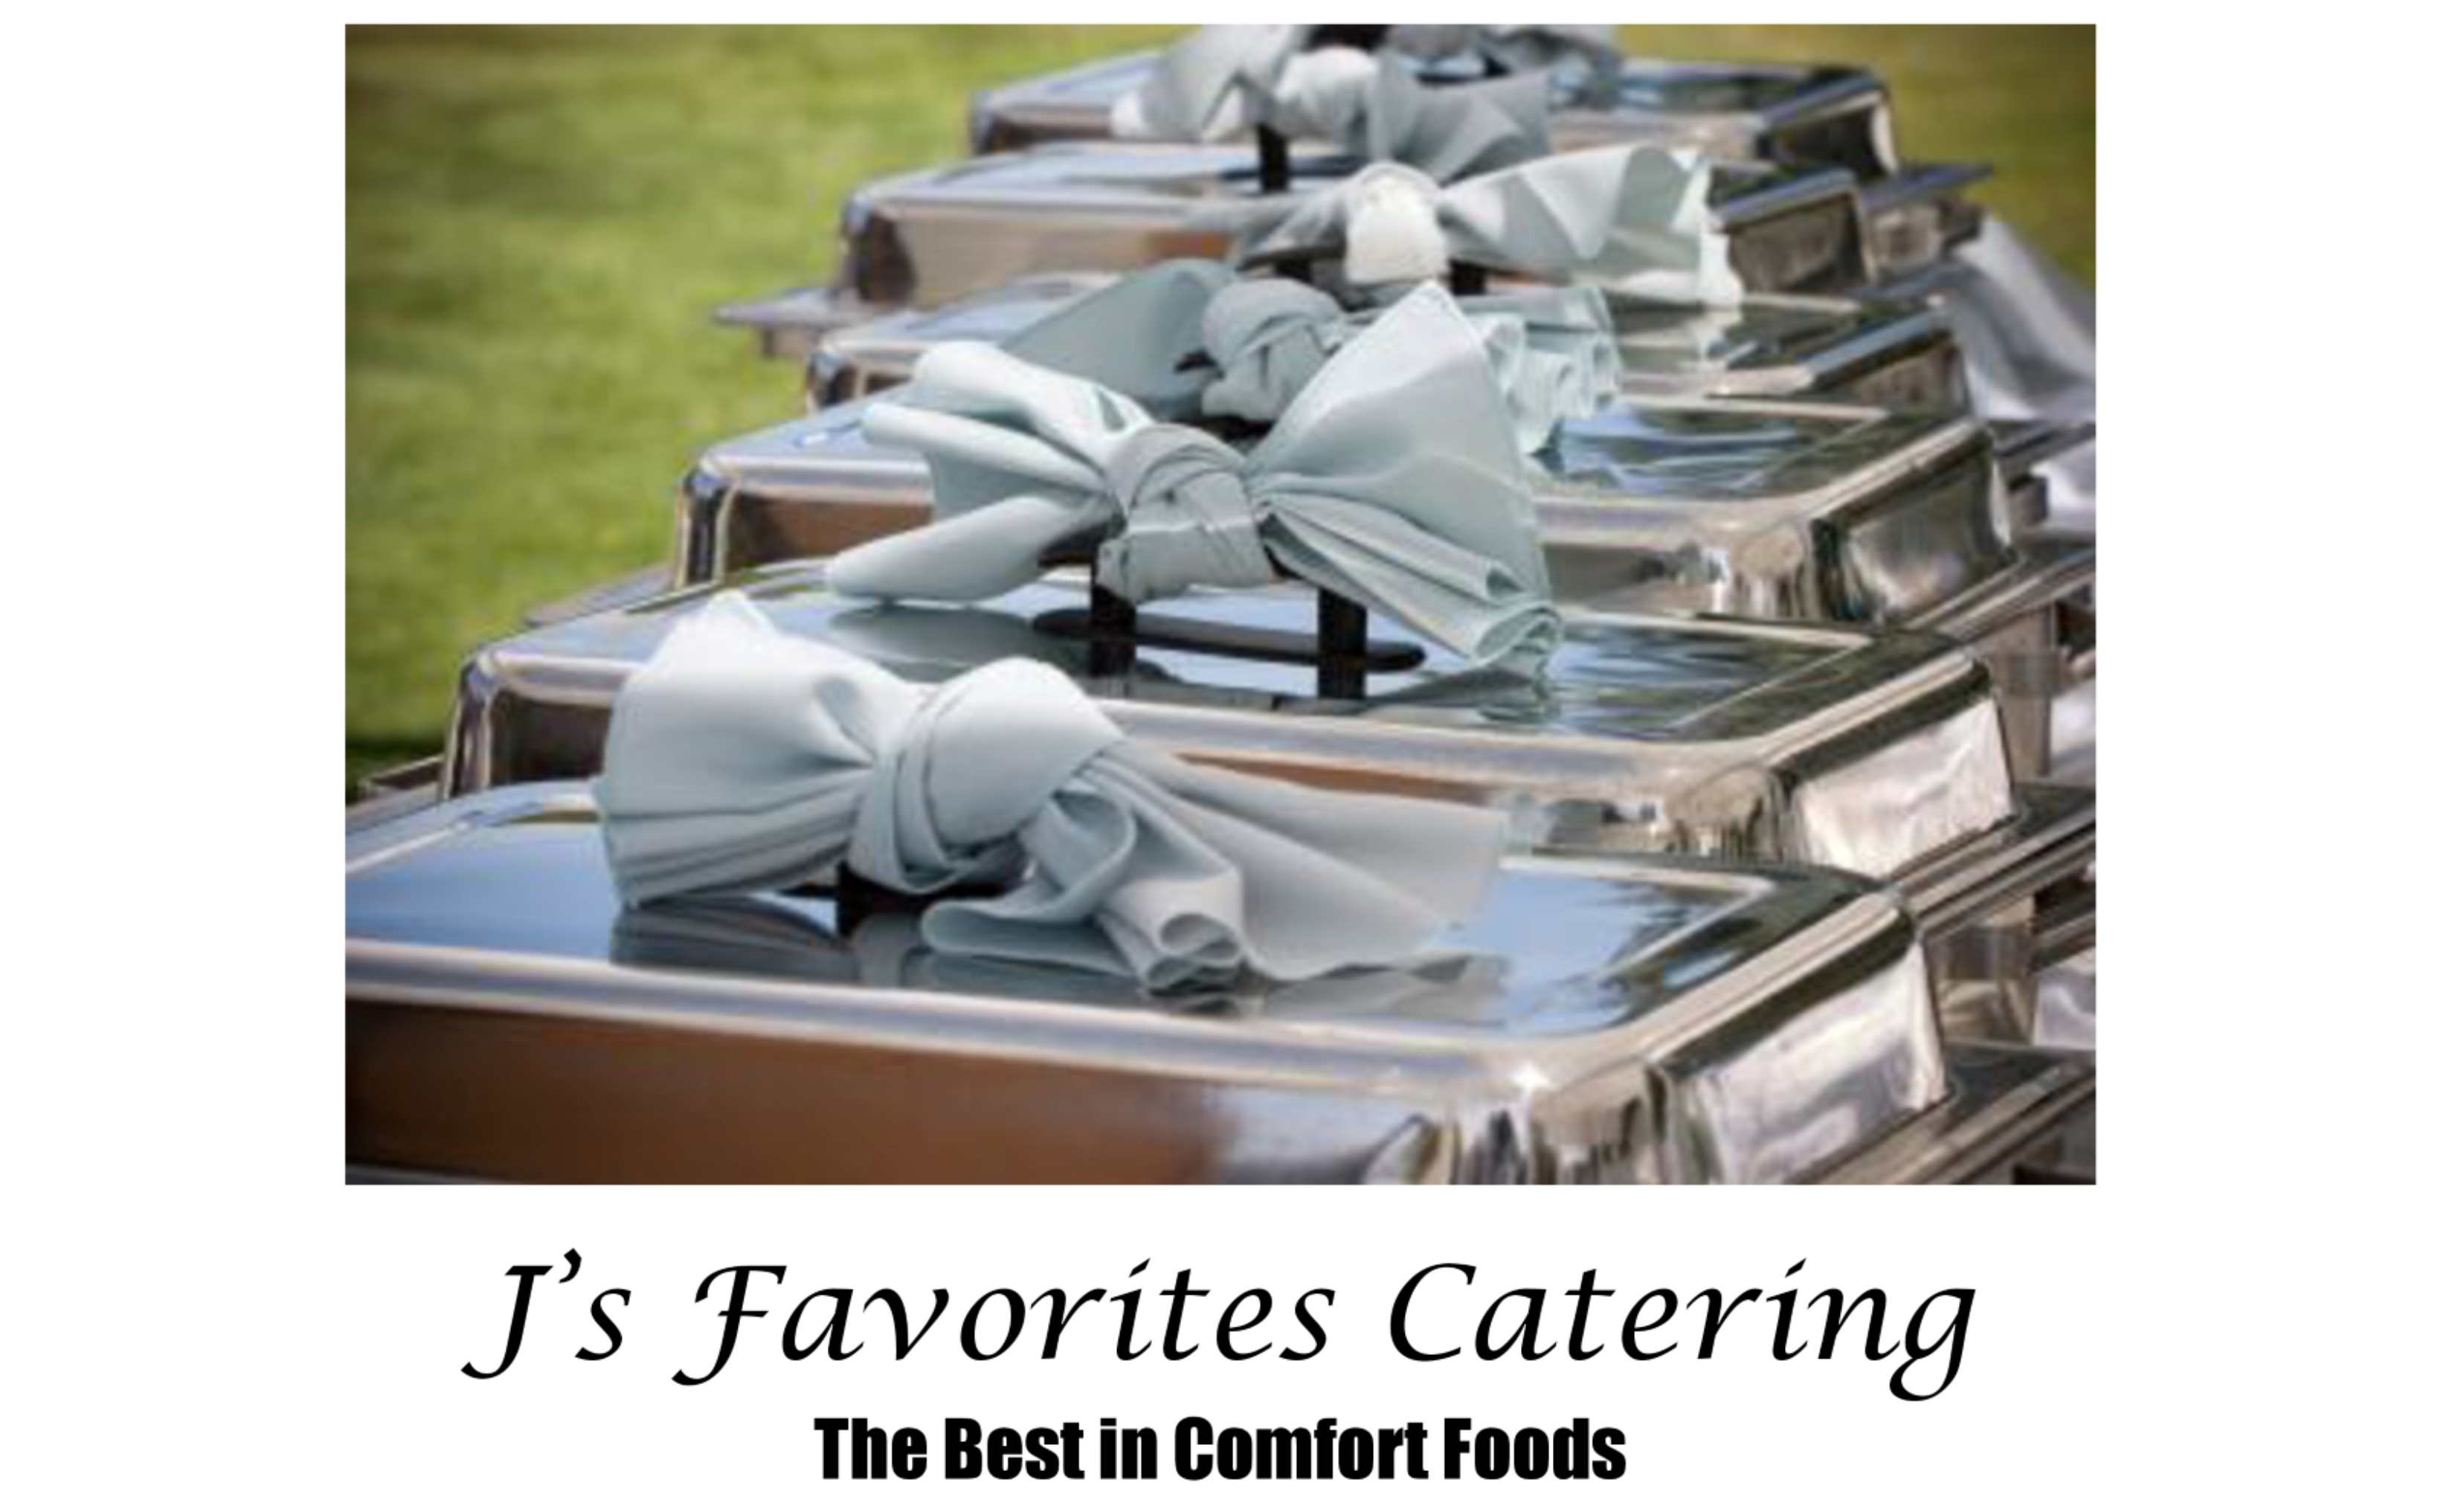 J's Favorite Catering